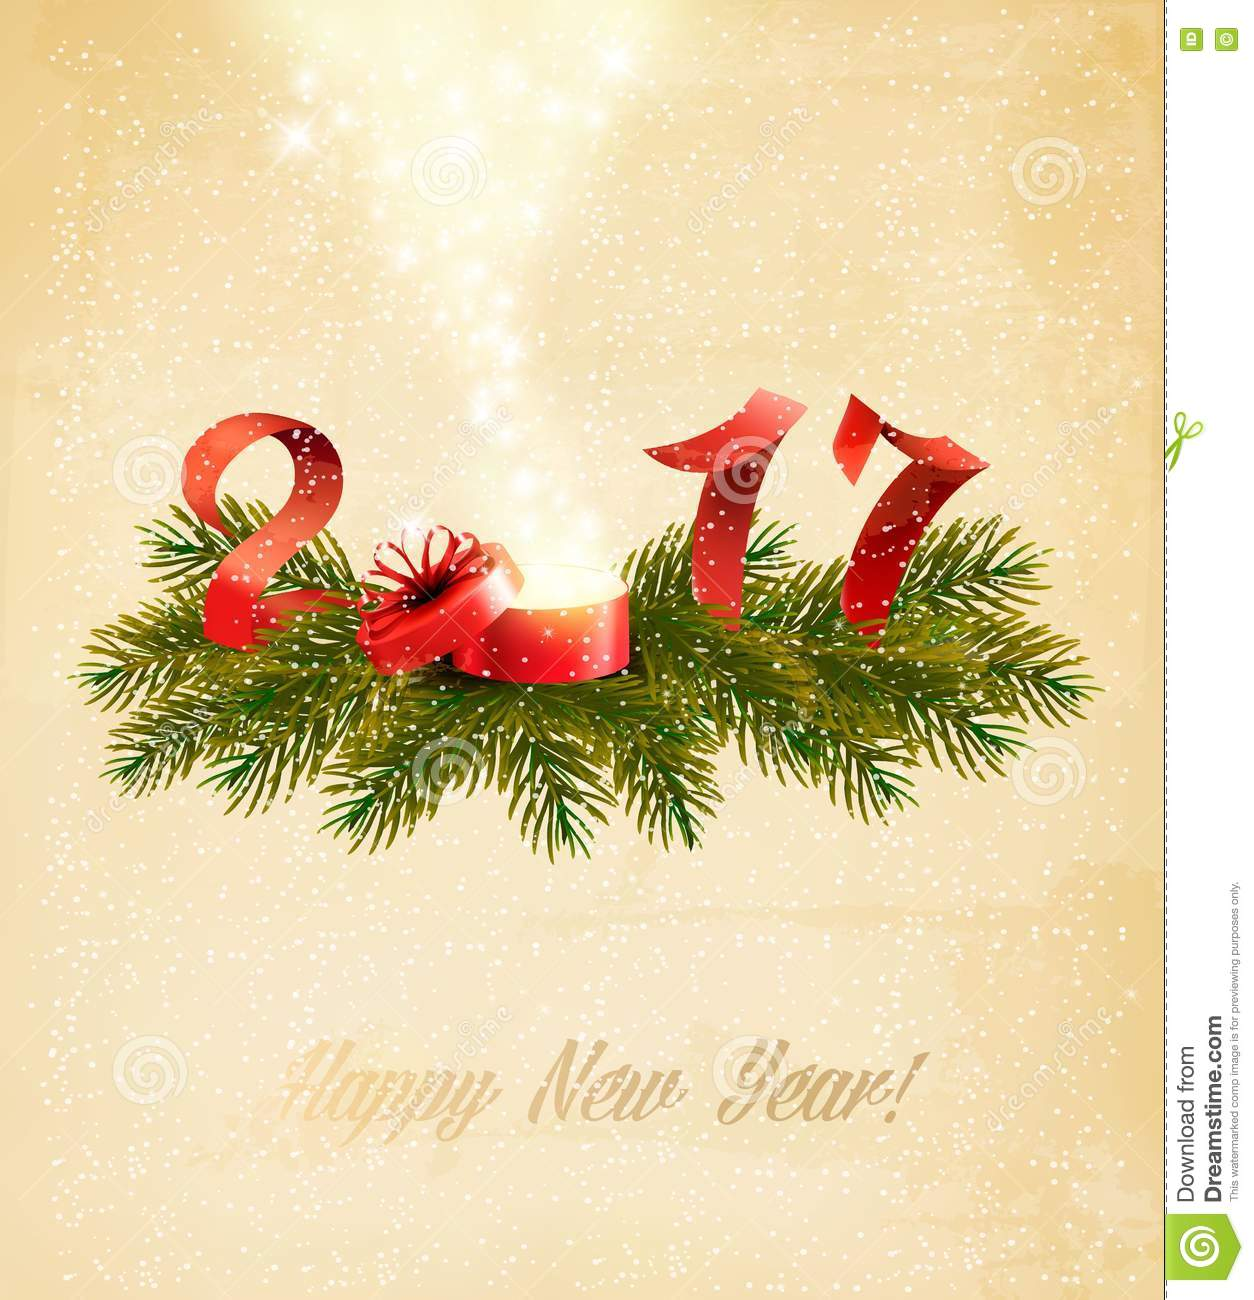 happy new year 2017 new year design template